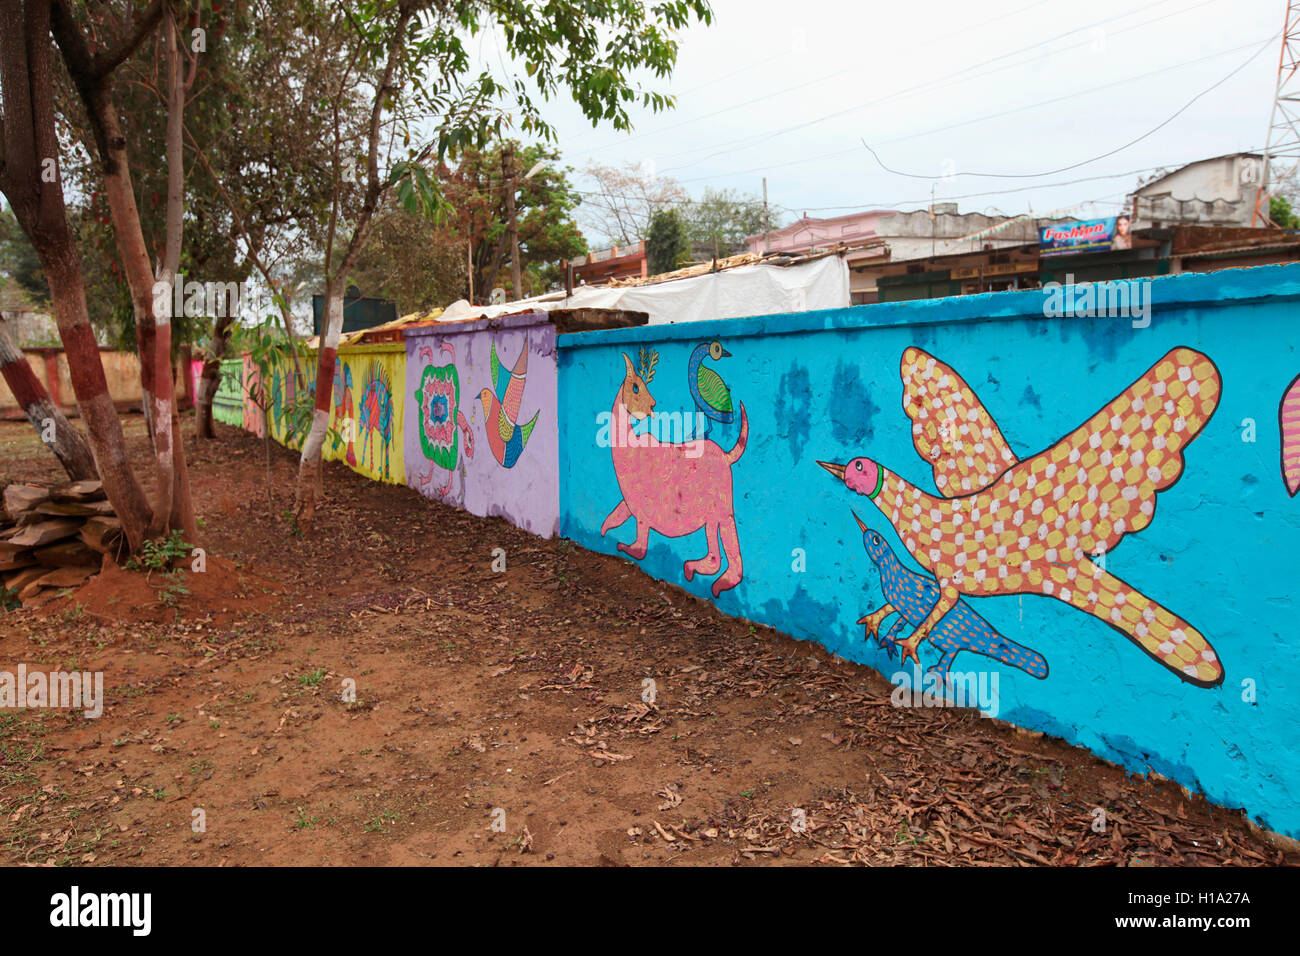 Colorful tribal painting on boundary walls, Anthropology Museum, Jagdalpur, Chattisgarh, India - Stock Image